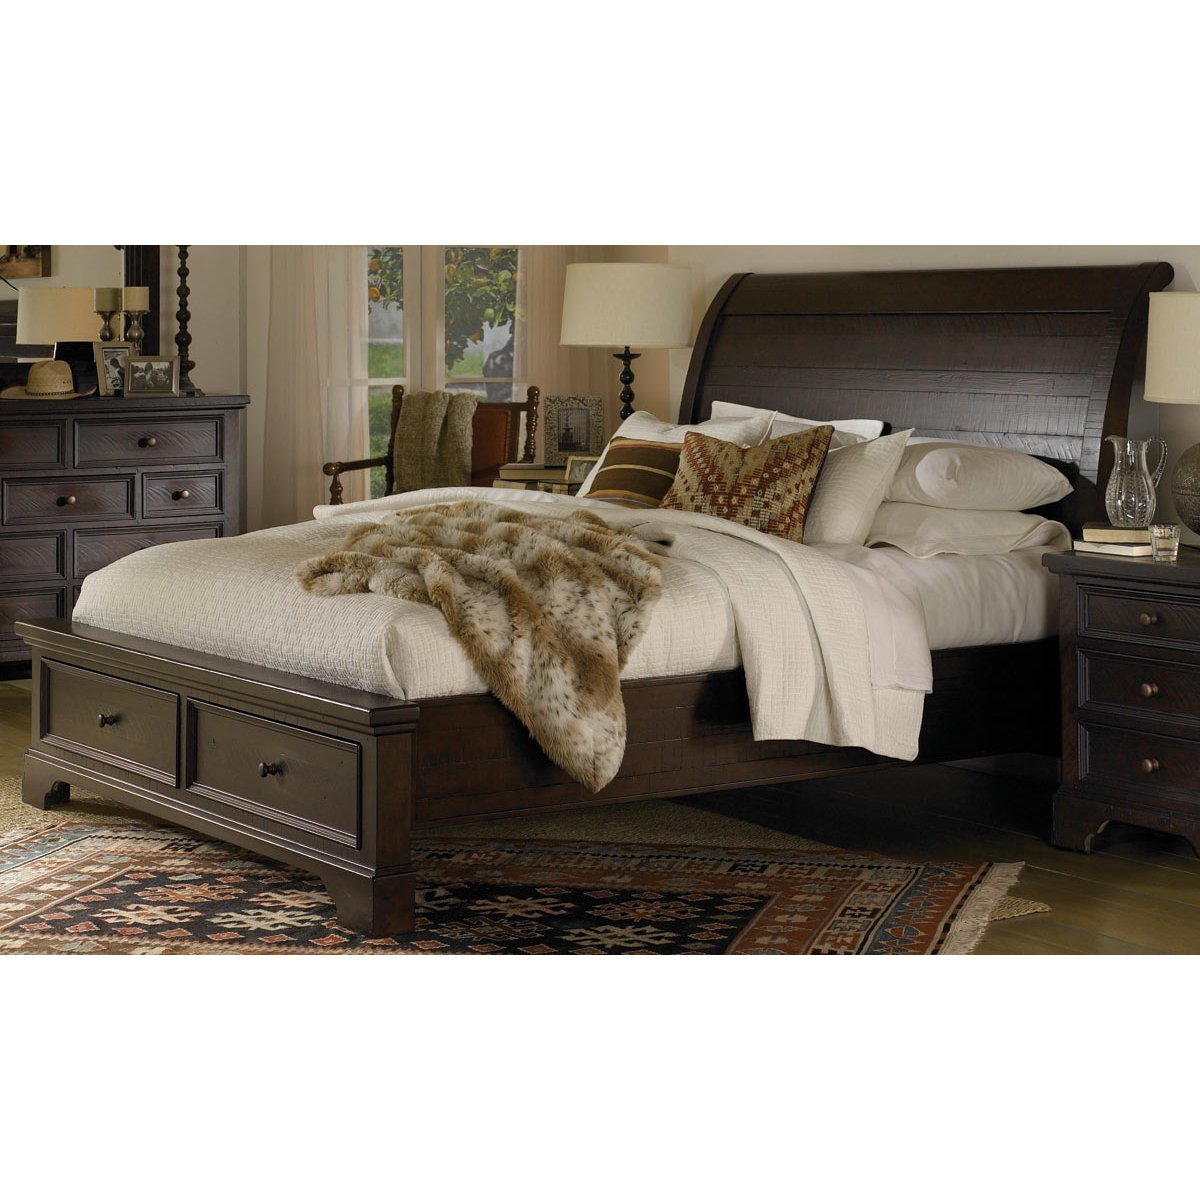 Bayfield mahogany cal king storage bed California king beds